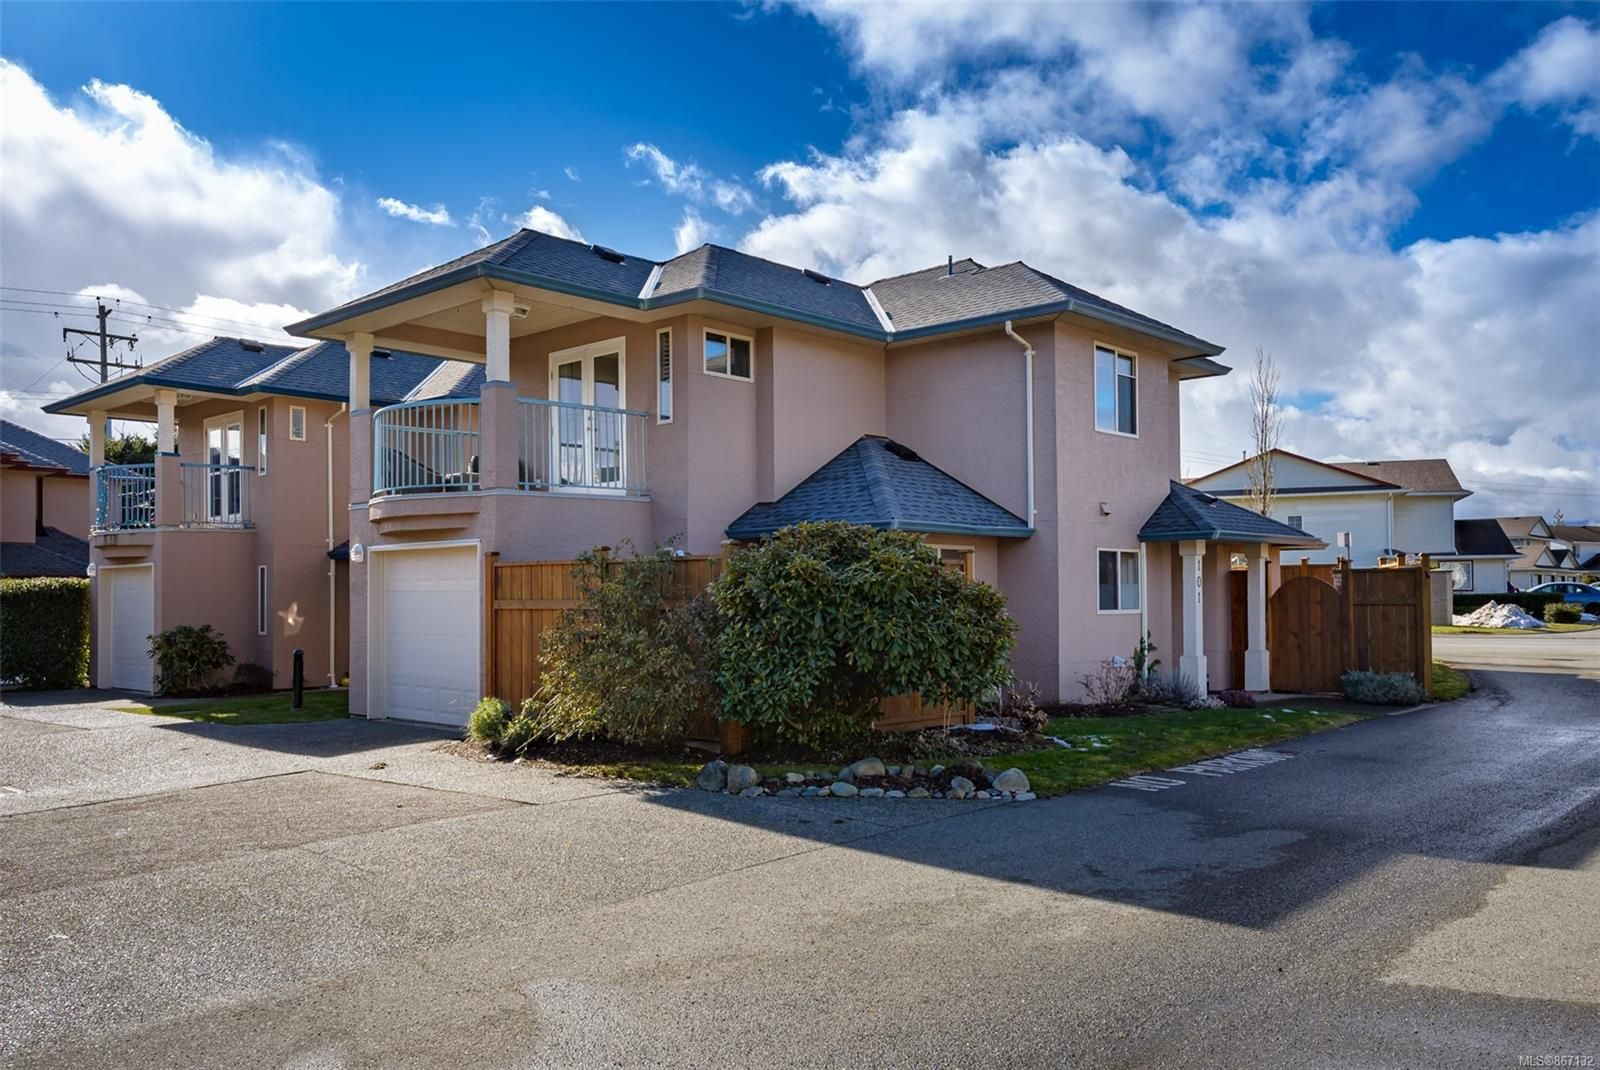 Main Photo: 101 720 Aspen Rd in : CV Comox (Town of) Row/Townhouse for sale (Comox Valley)  : MLS®# 867132